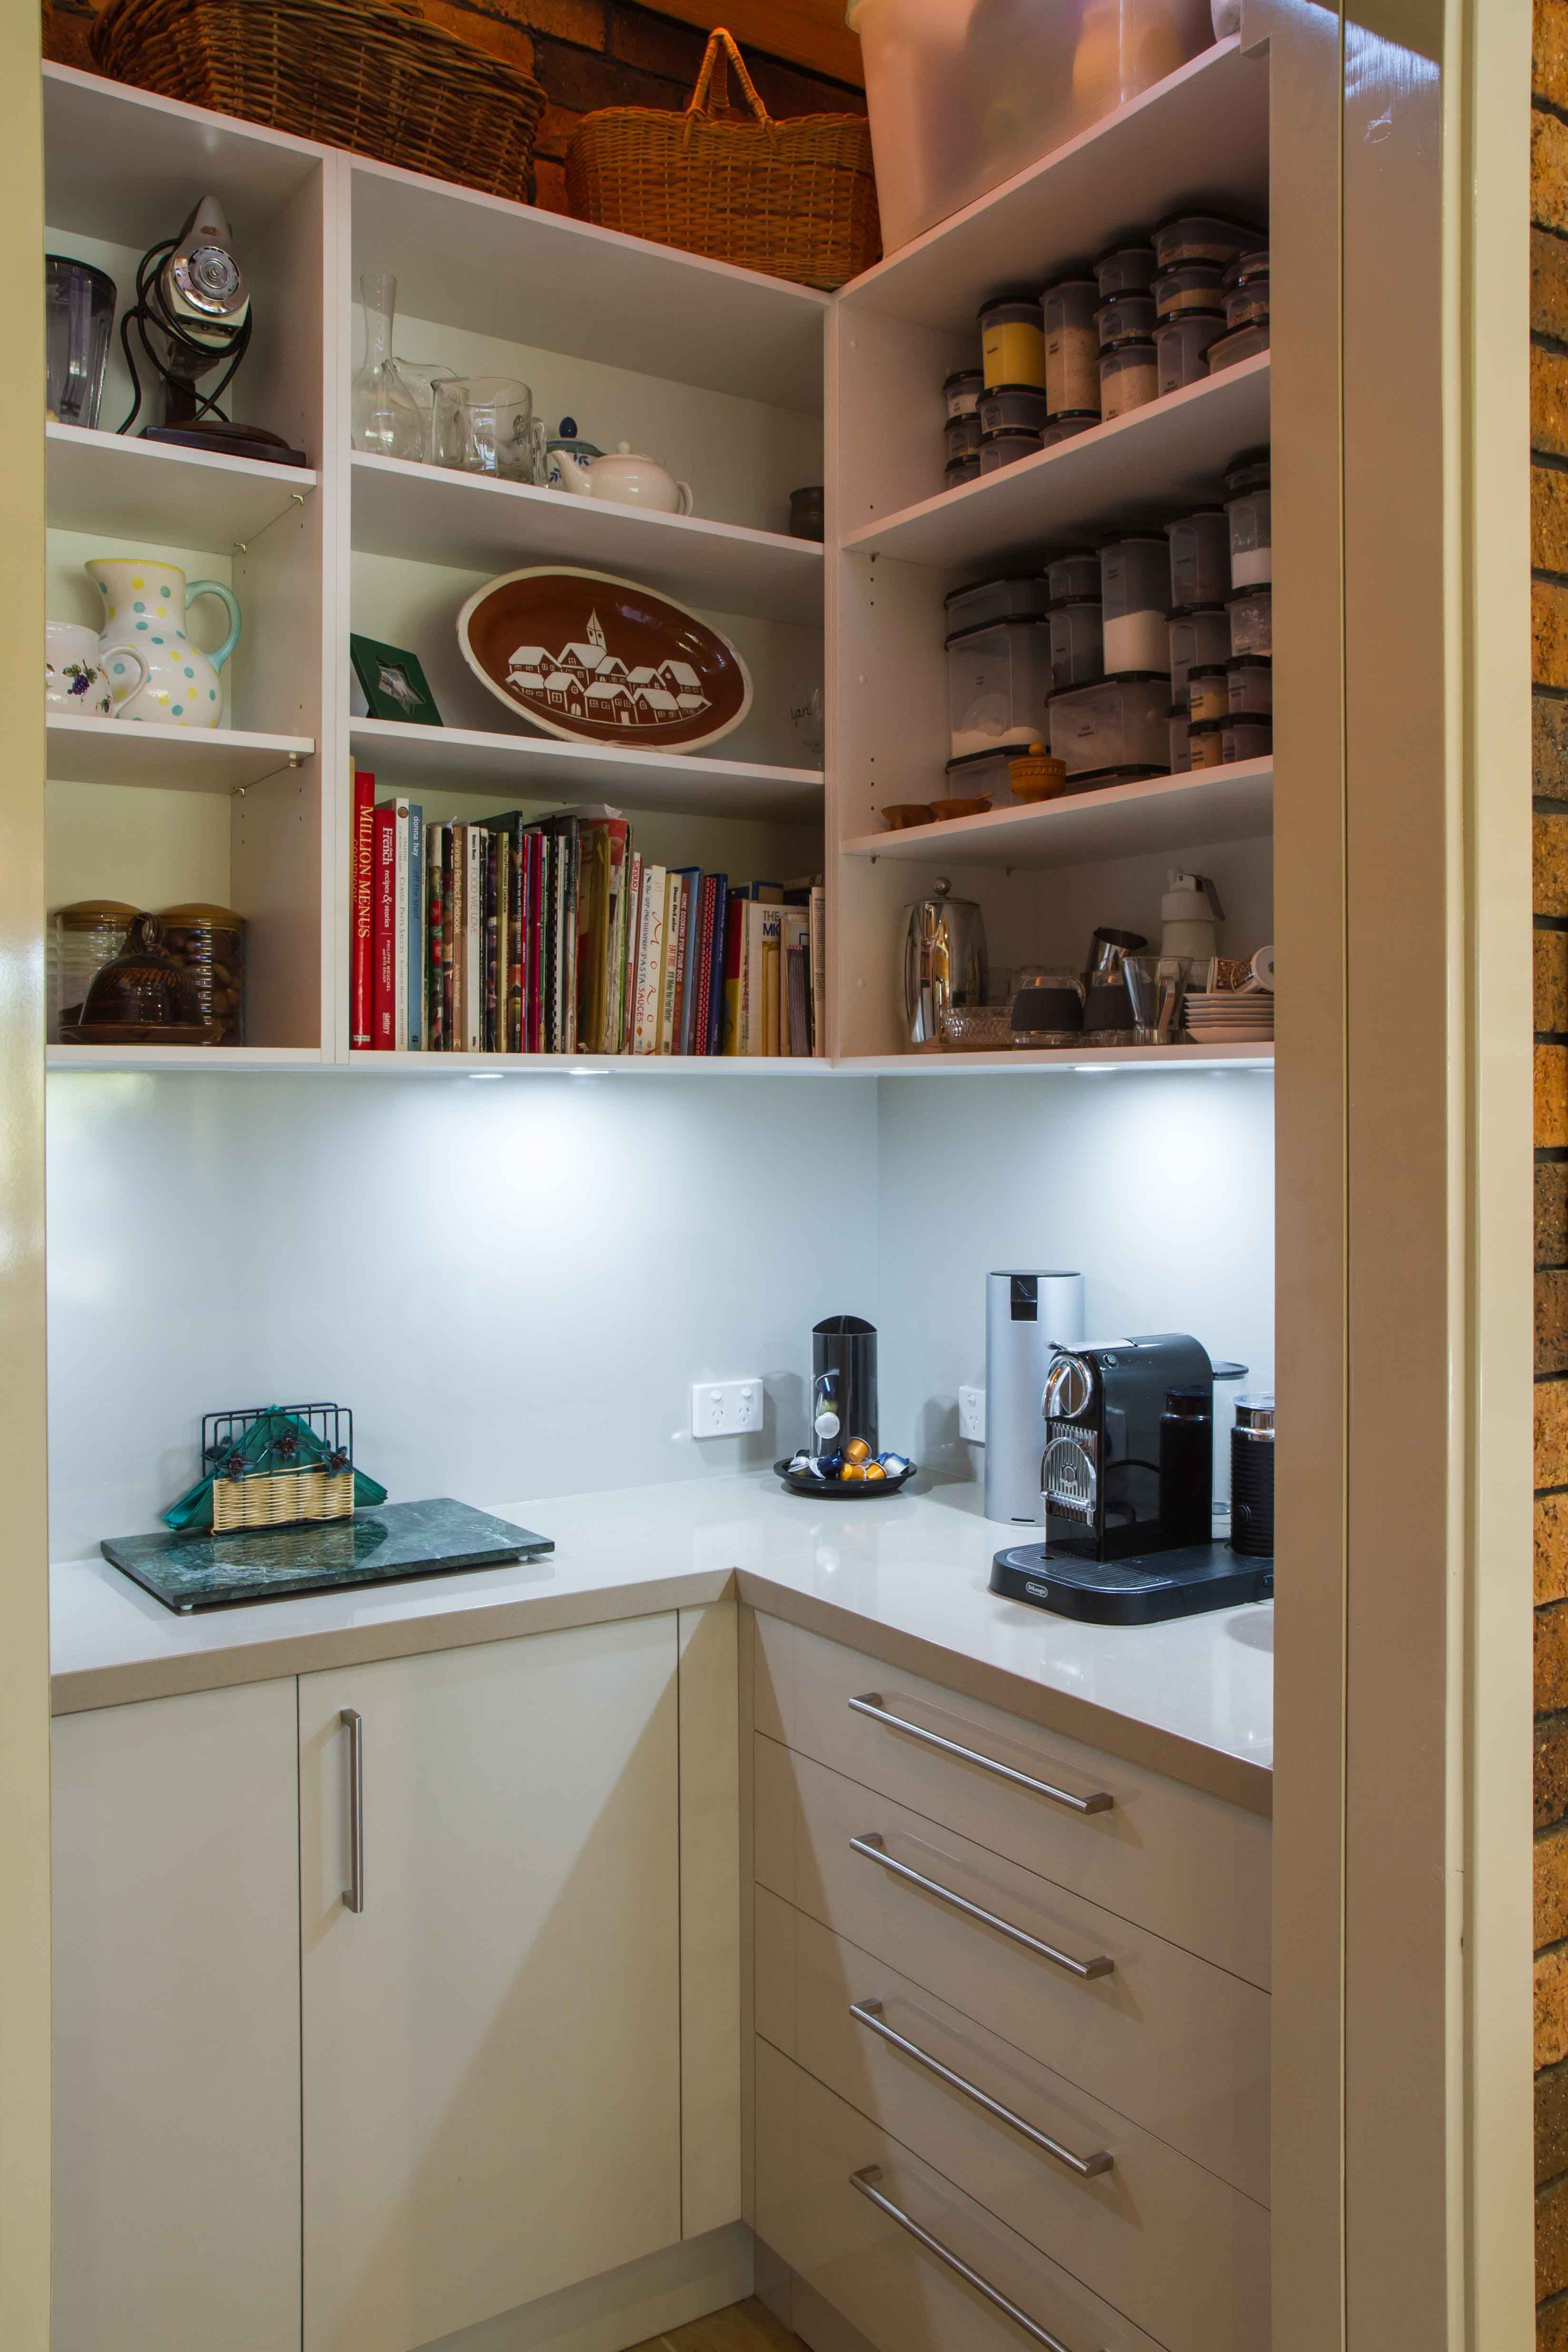 A stunning, midcentury inspired kitchen to suit the 1970s